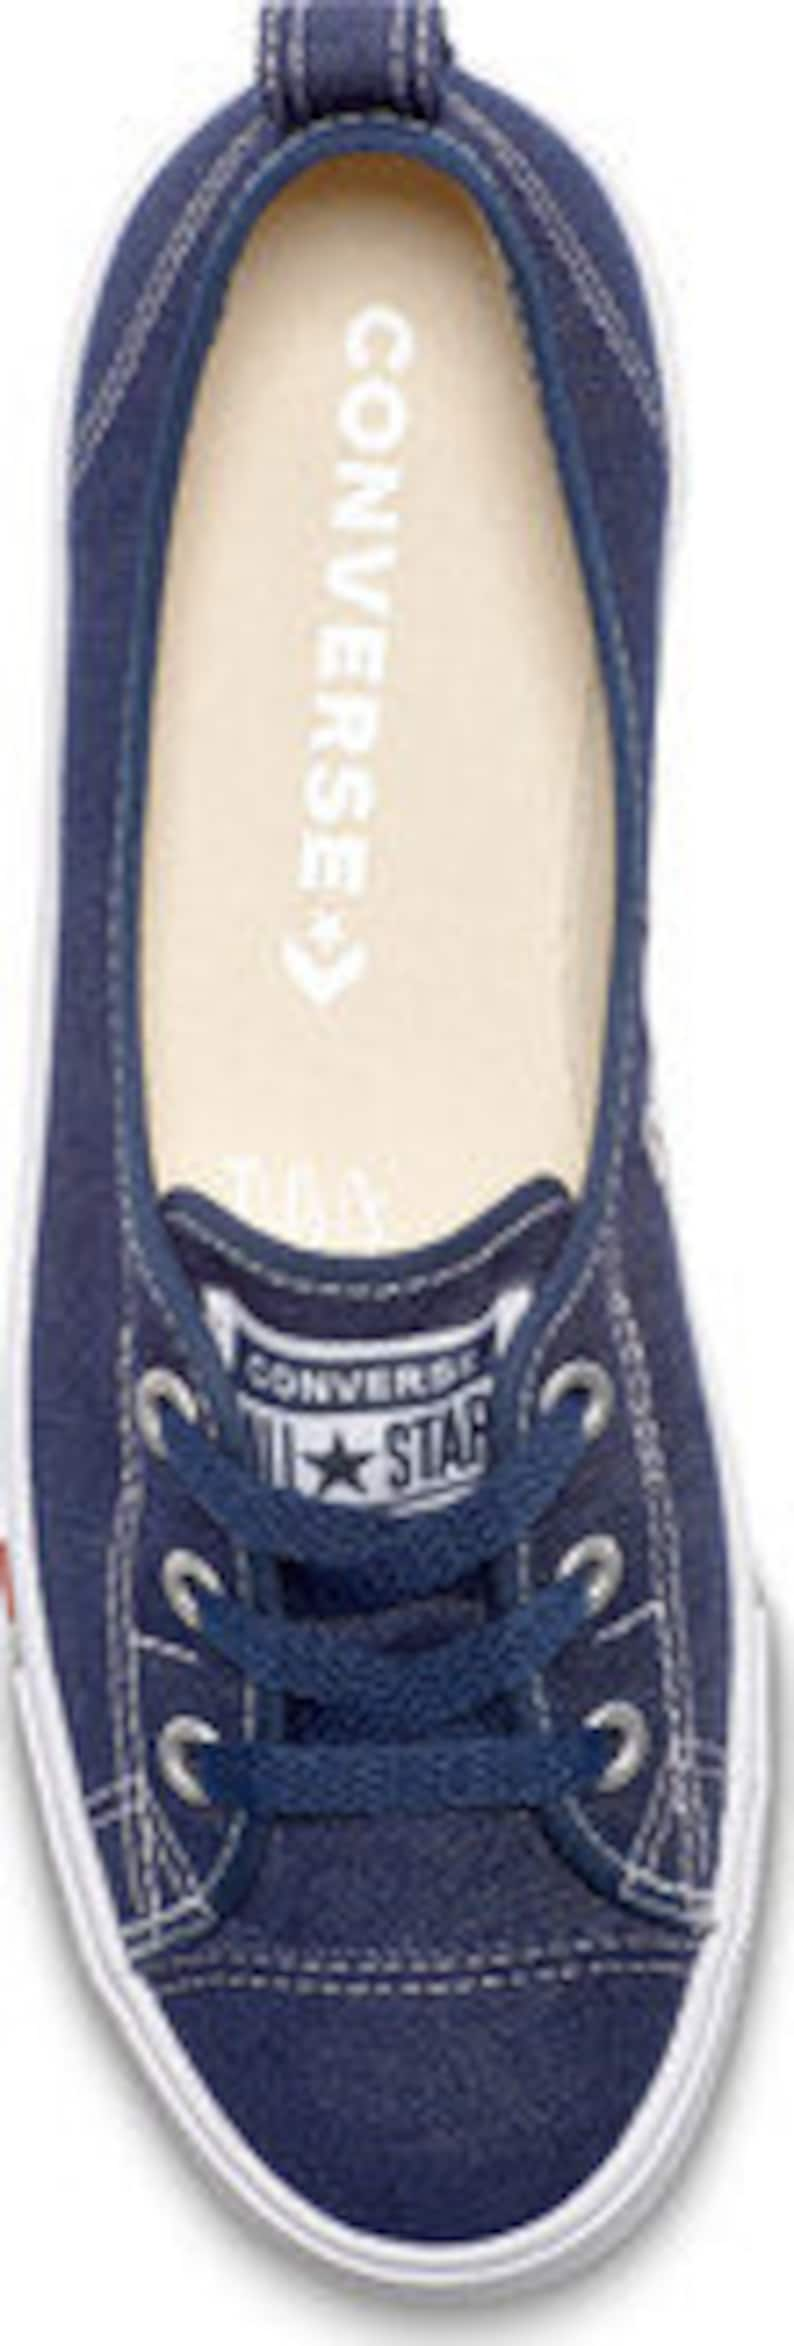 Navy Blue Indigo Converse Love Heart Slip on Ballet Lace | Etsy